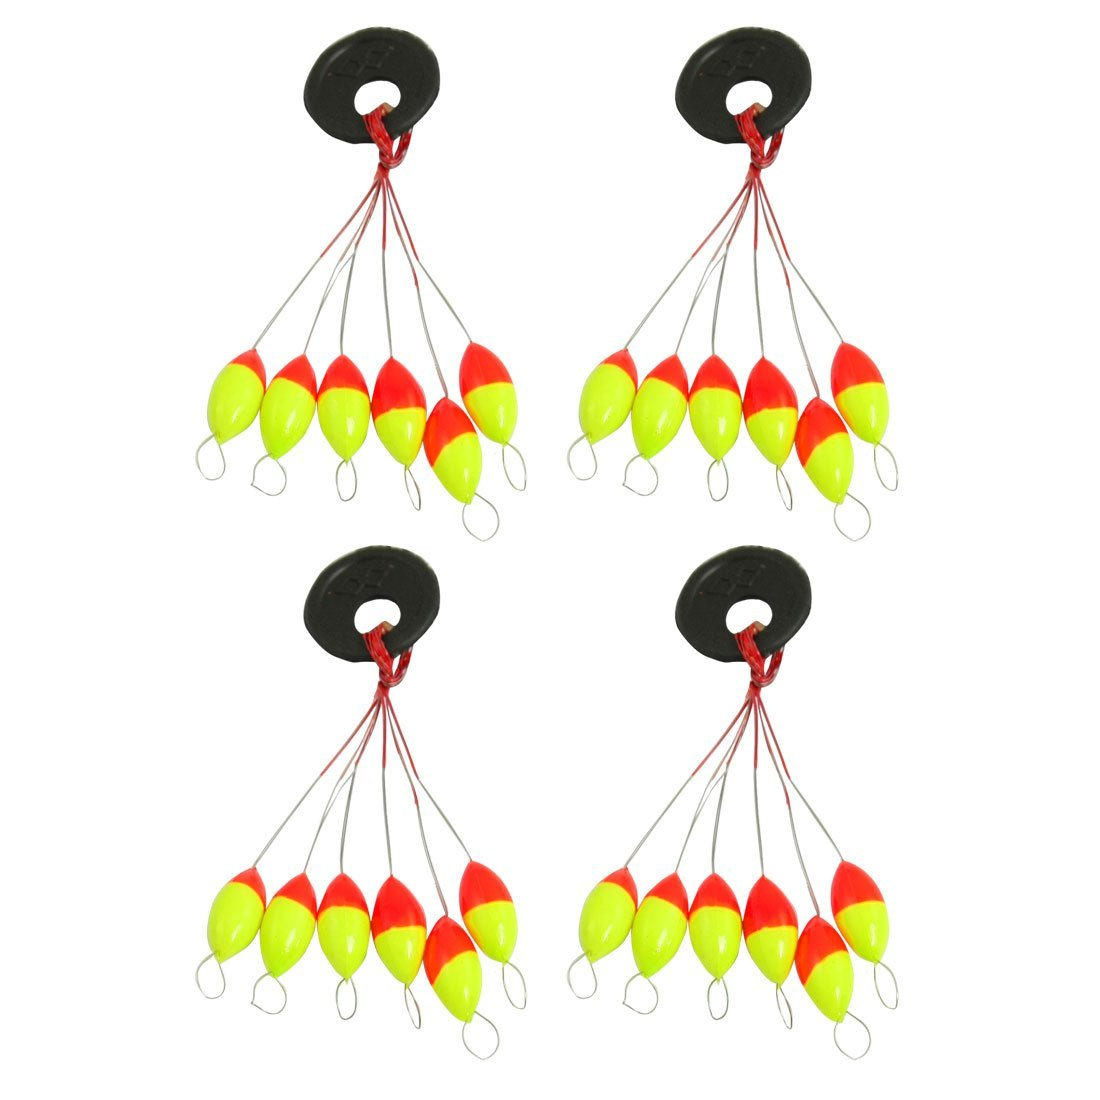 SODIAL(R) 4 Pcs Yellow Red Plastic 6 in 1 Fishing Bobber Stopper Sz 3